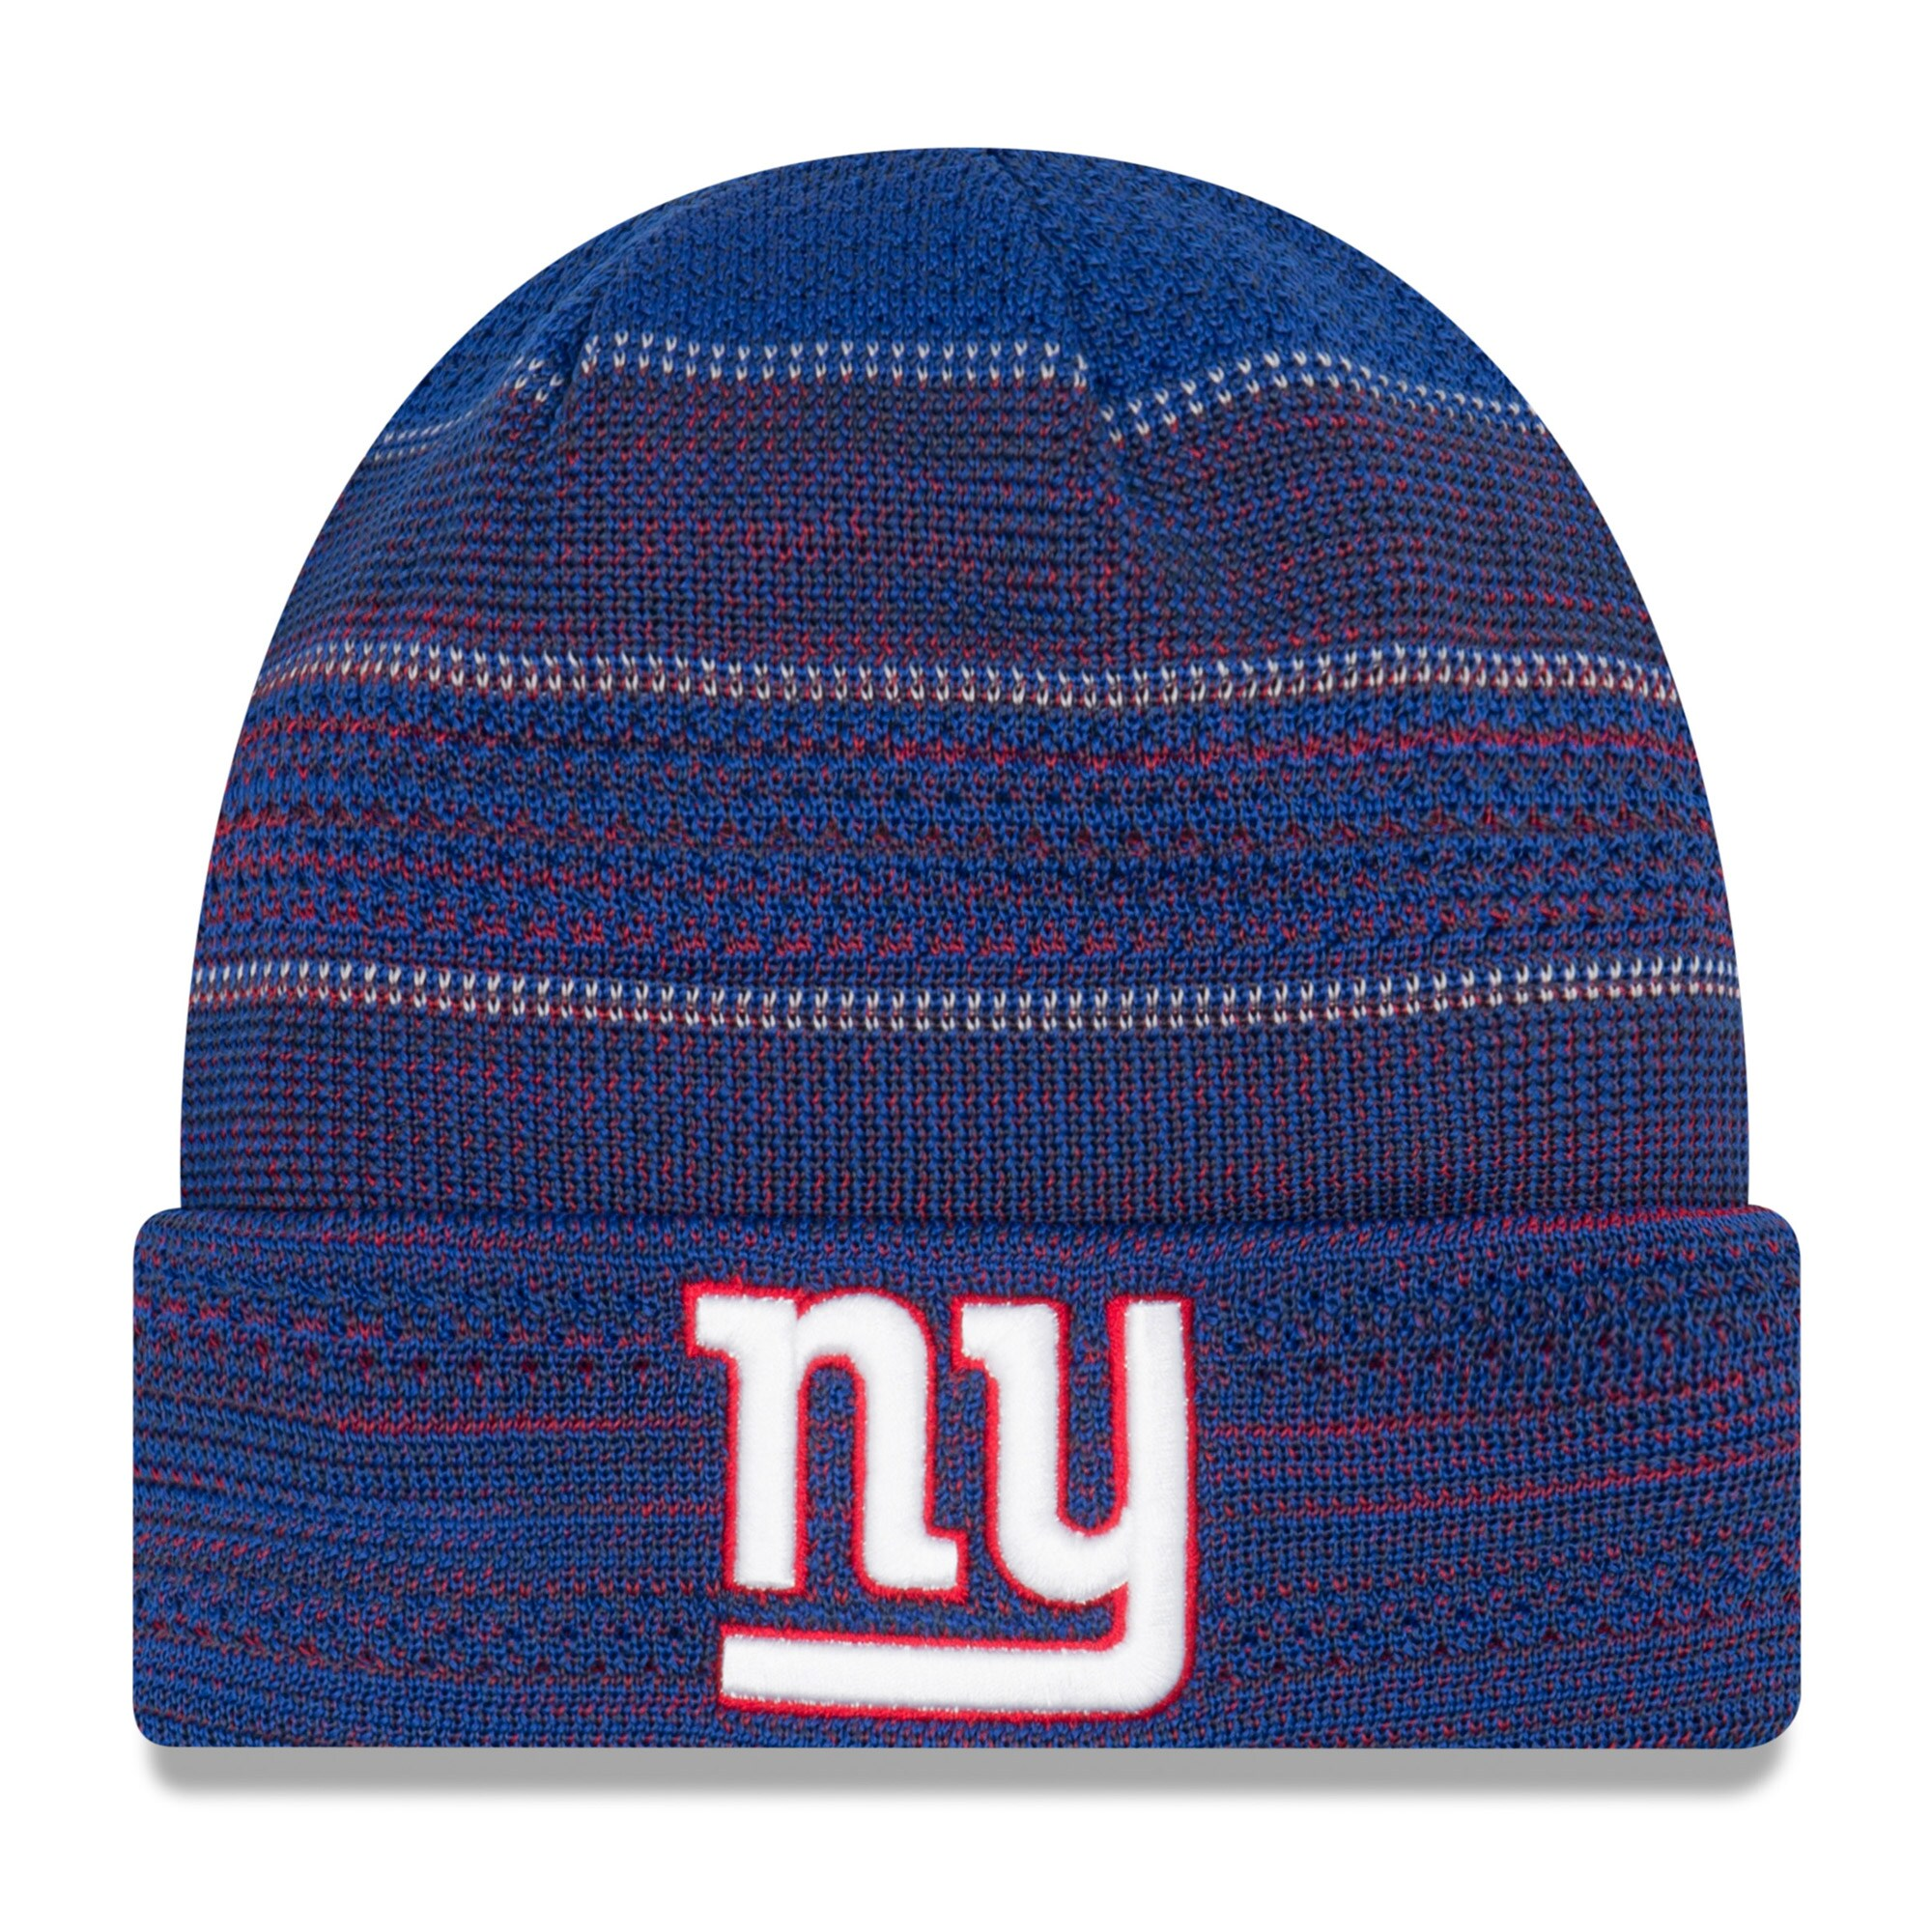 New York Giants New Era Youth 2017 Sideline Official TD Knit Hat - Royal